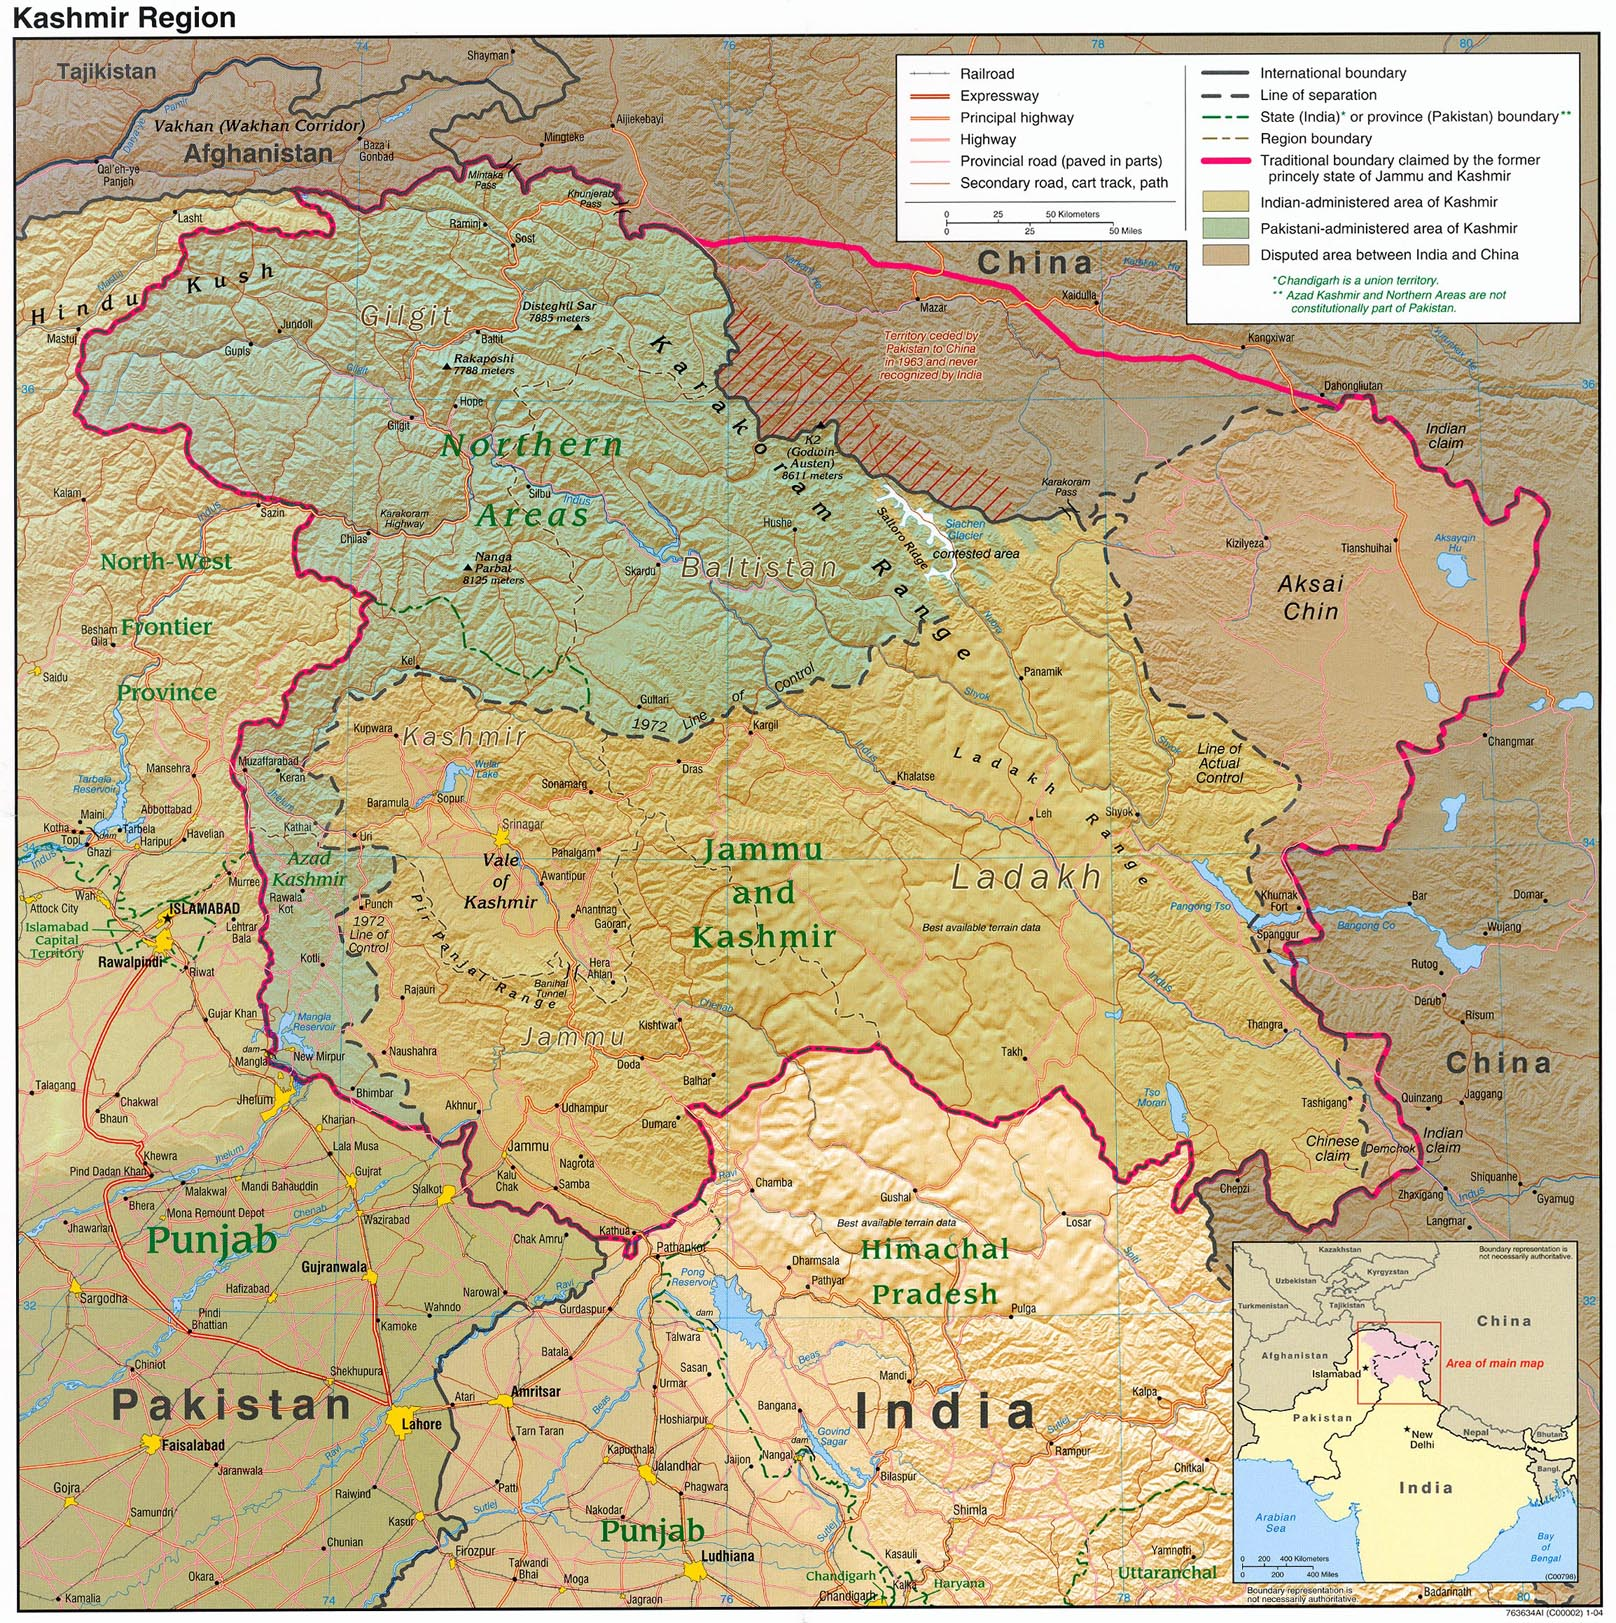 Kashmir Maps  PerryCastaeda Map Collection  UT Library Online